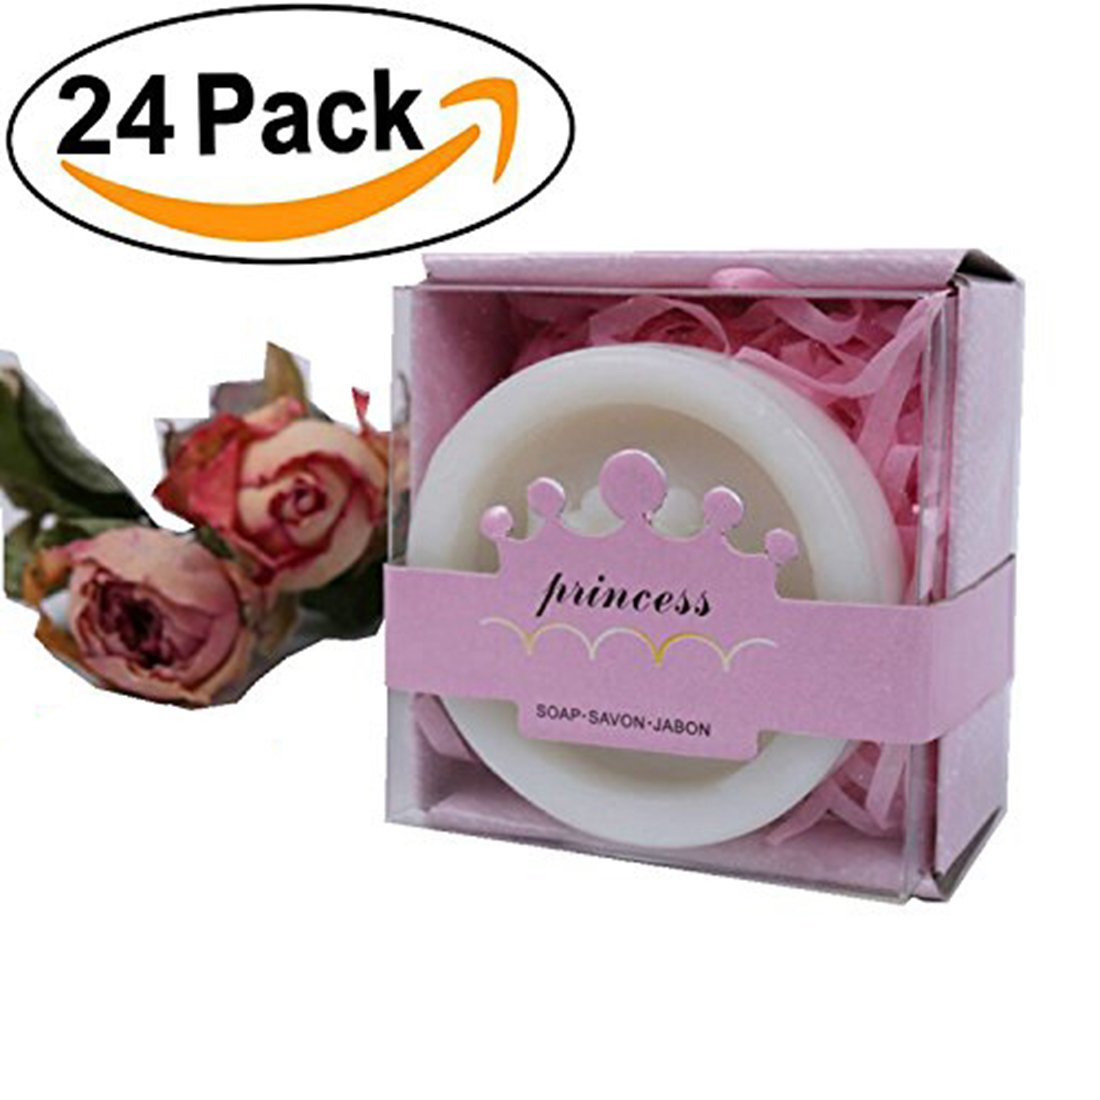 AiXiAng 24 Pack Handmade Princess Crown Style Soap Favors for Baby Shower Favors Decorations for Girl